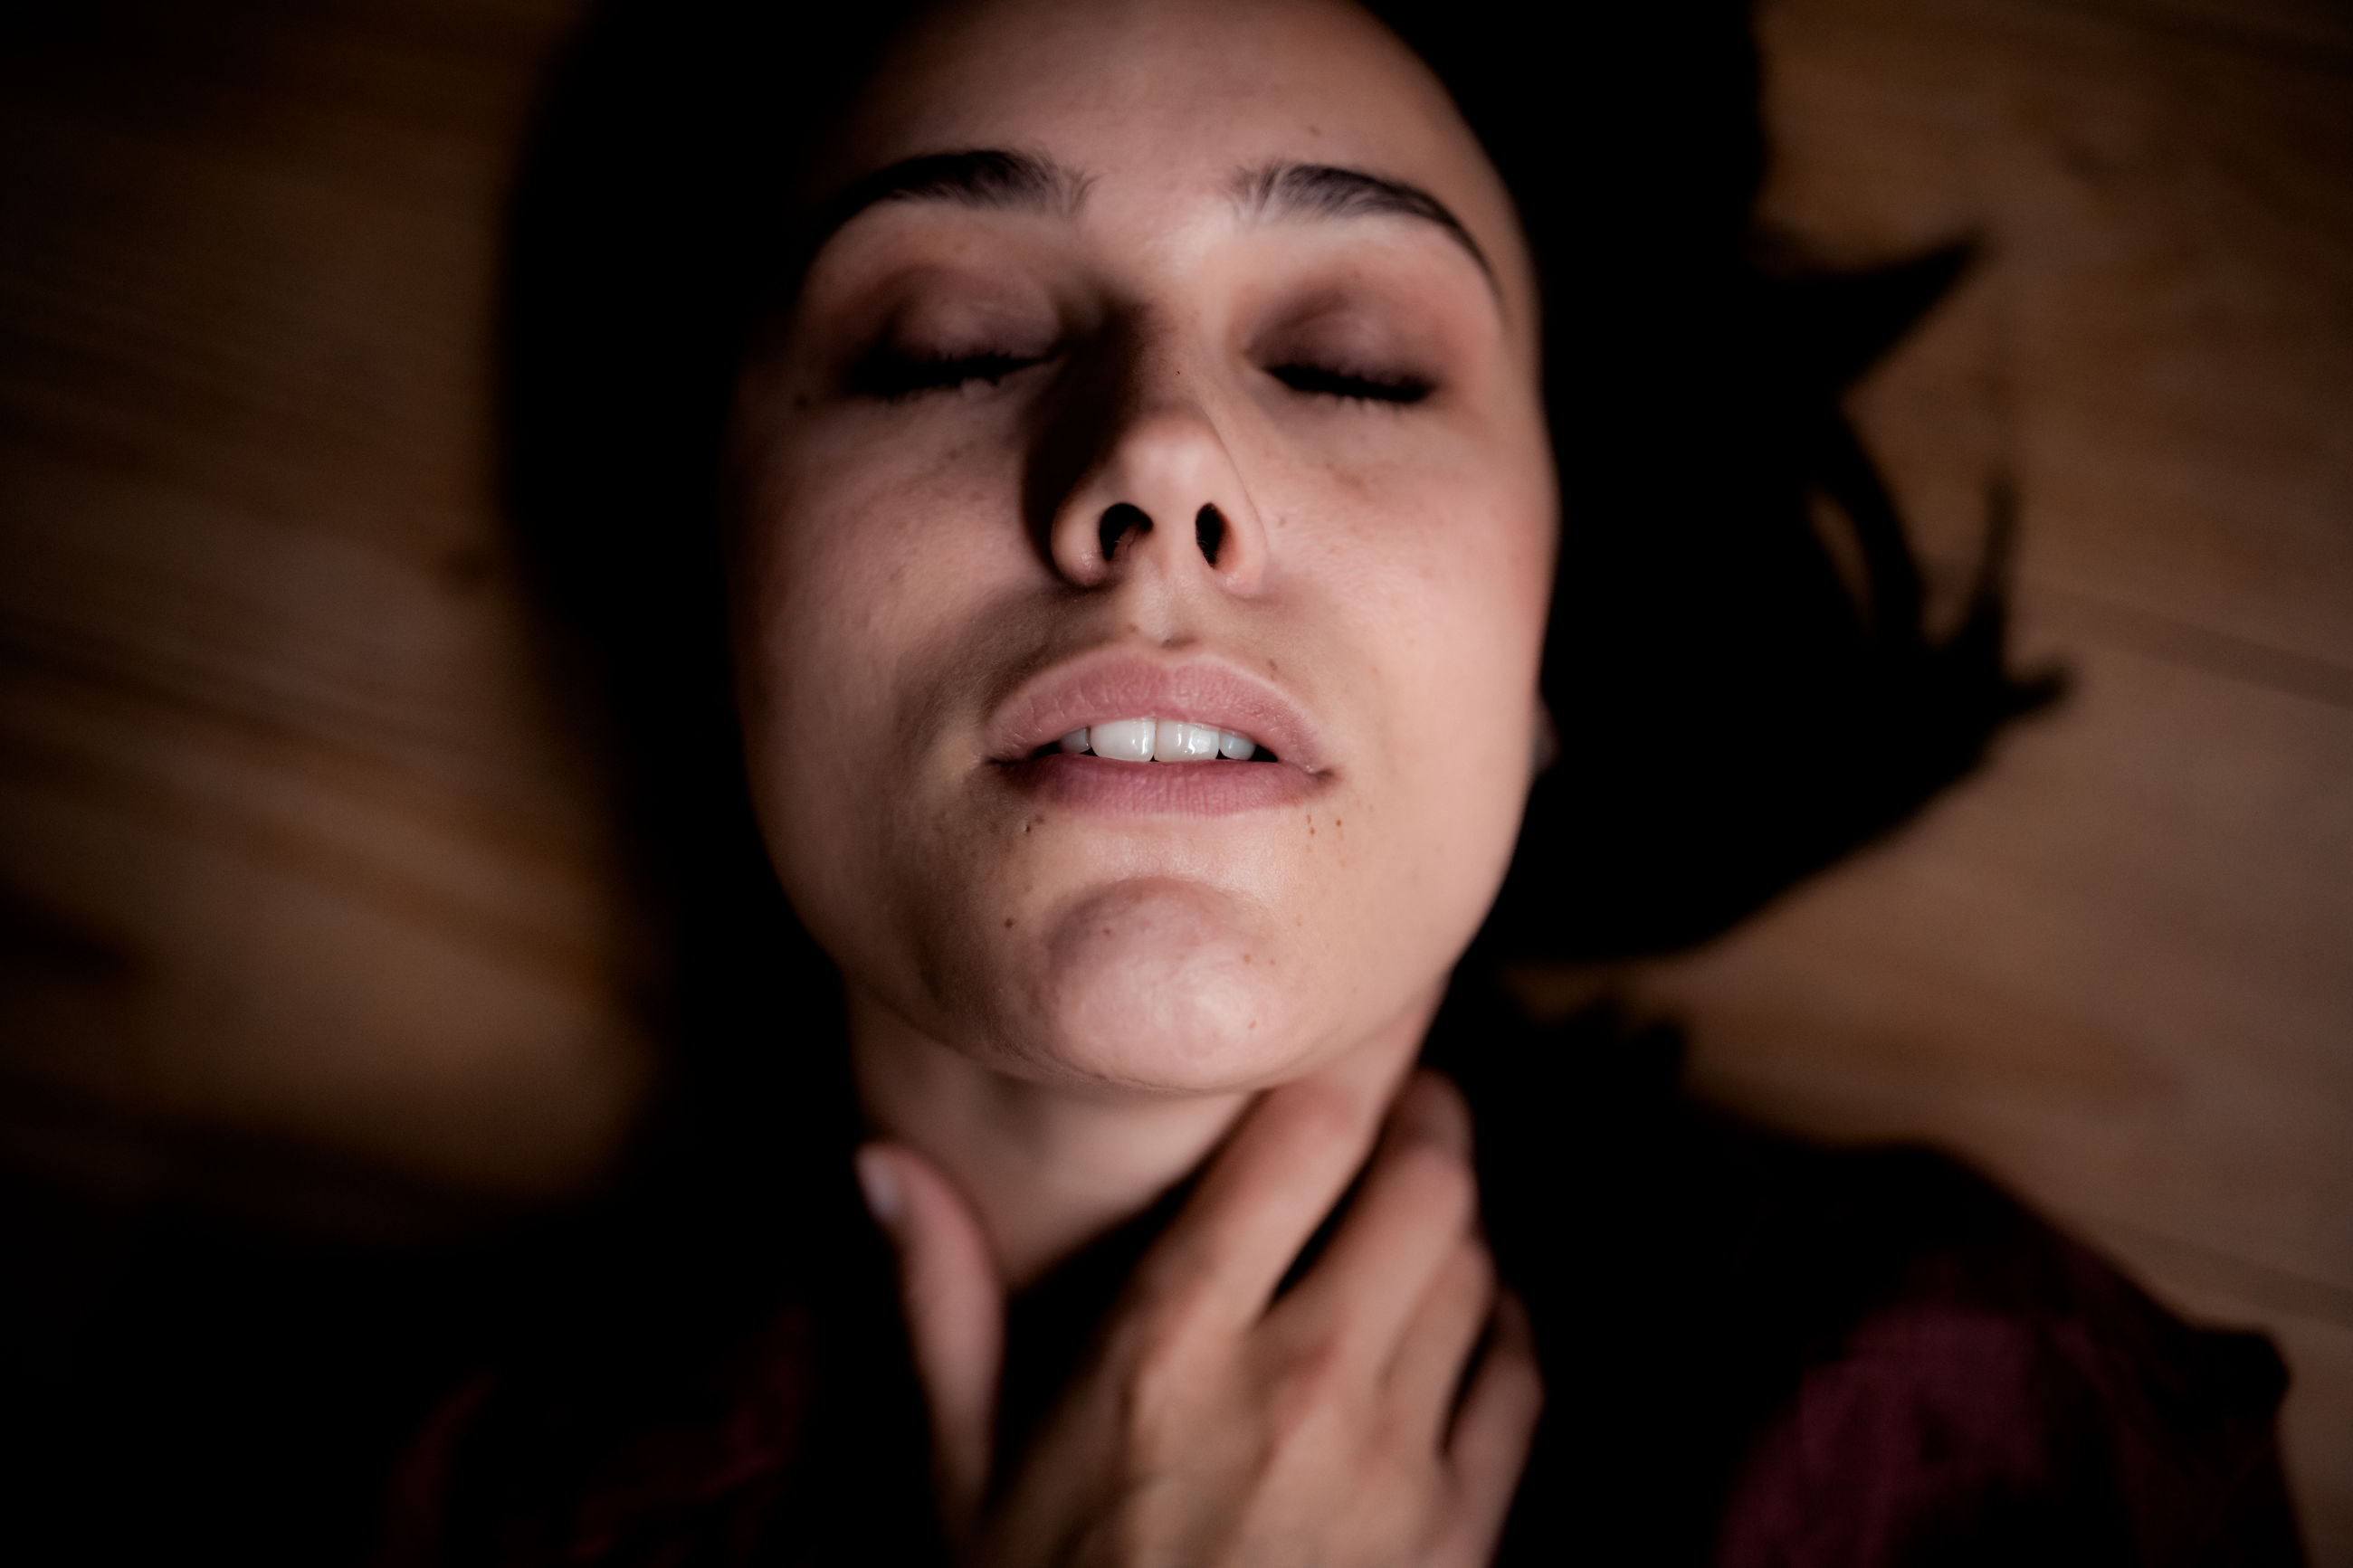 headshot, one person, portrait, front view, indoors, real people, young adult, lifestyles, close-up, young women, leisure activity, lying down, lying on back, women, focus on foreground, smiling, looking, human body part, contemplation, human face